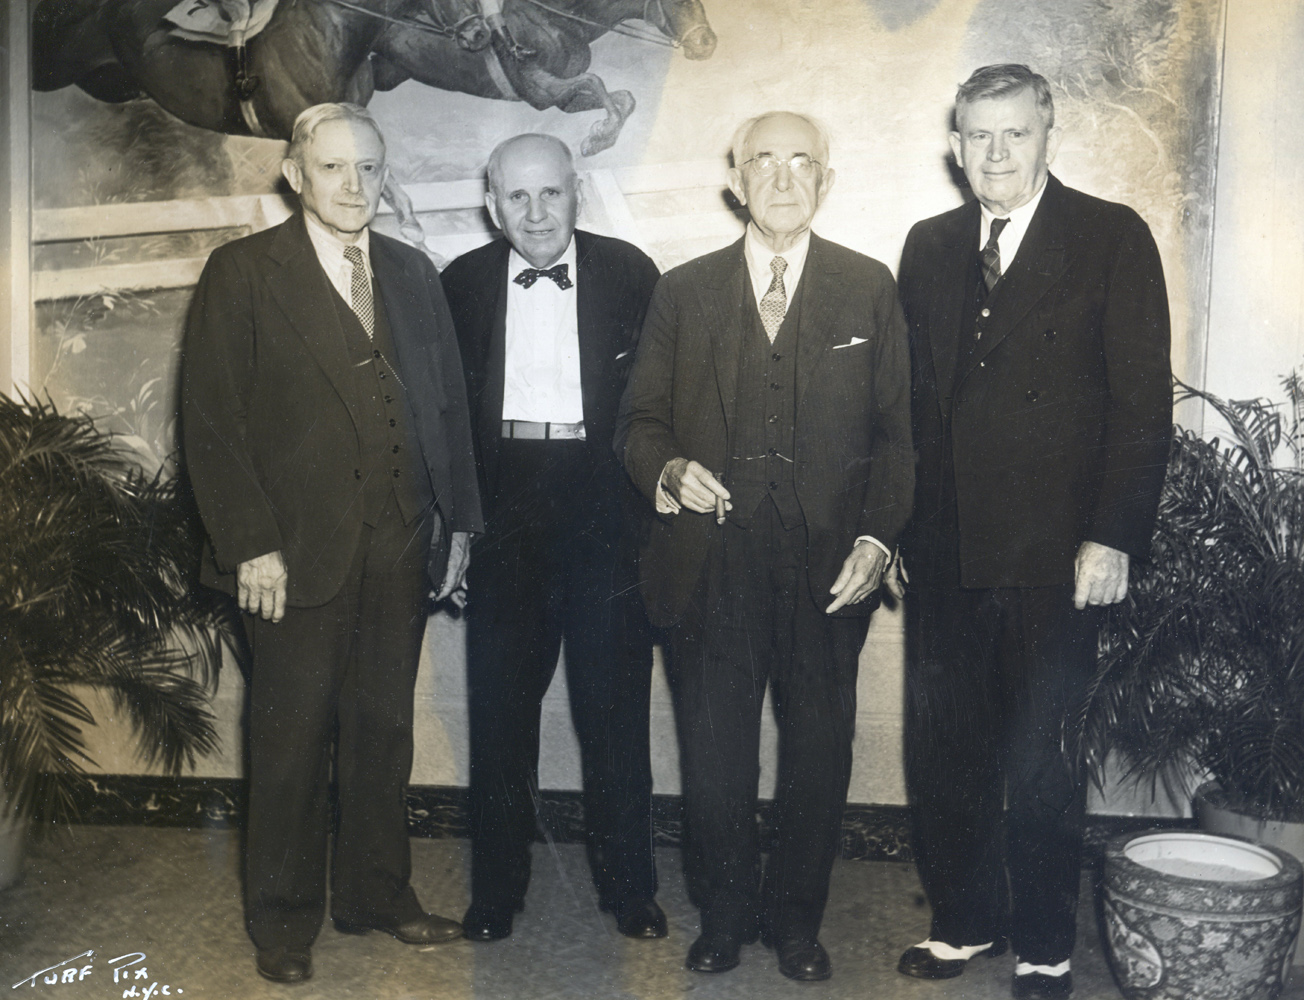 Hall of Fame trainers Henry McDaniel, James Fitzsimmons, A. Jack Joyner, and T. J. Healey in Saratoga in 1939 (TurfPix/Museum Collection)